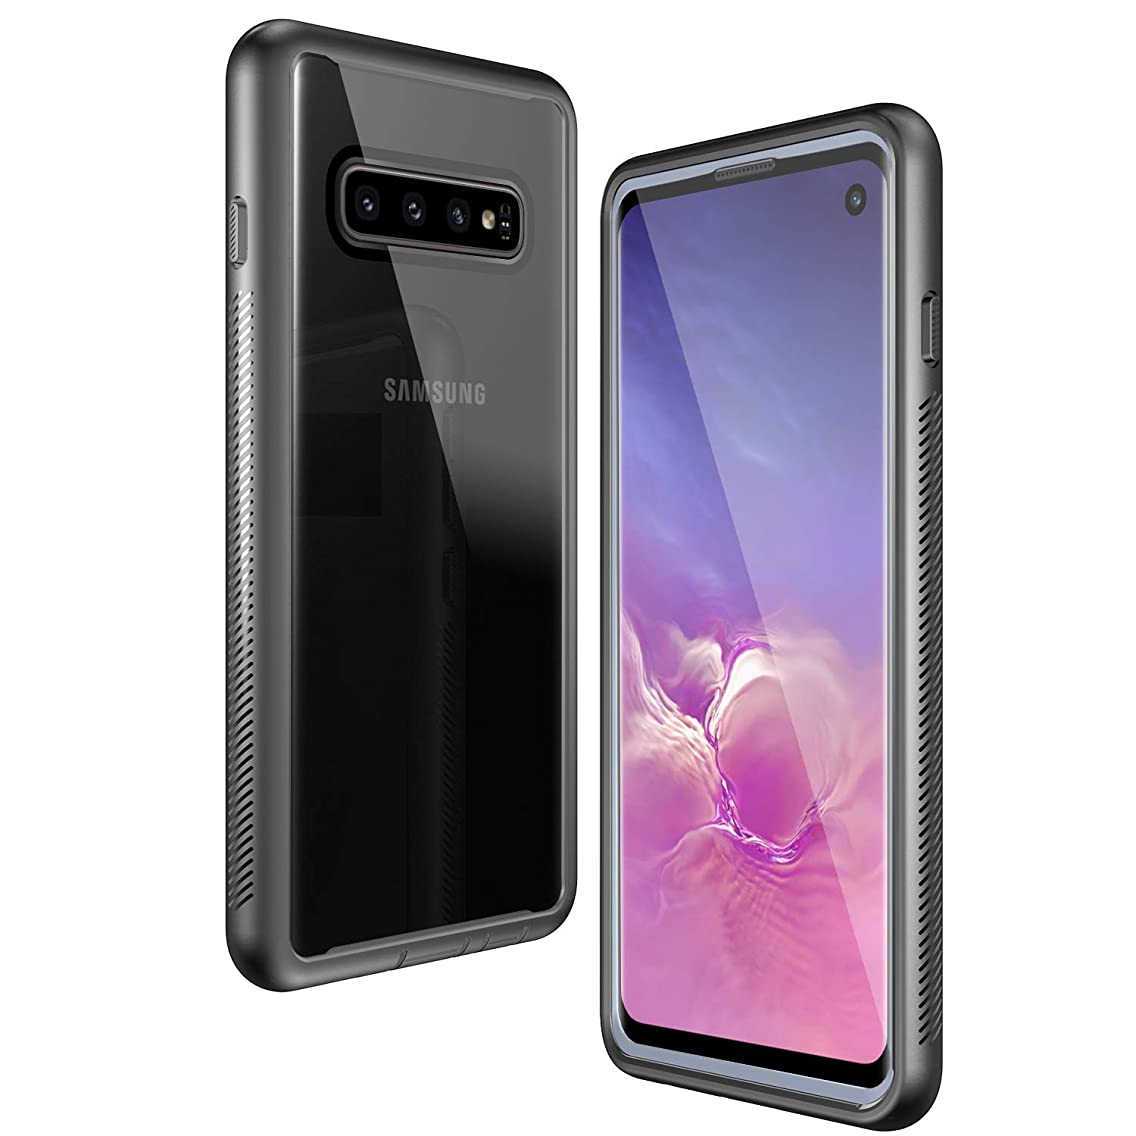 Samsung Galaxy S10 Case, KUMEDA Galaxy S10 Cover [Ultra Lightweight] Anti-Scratch Reinforced Corner Protection Bumper Case for Galaxy S10 6.1 inch 2019 Release (Black/Gray+Clear)